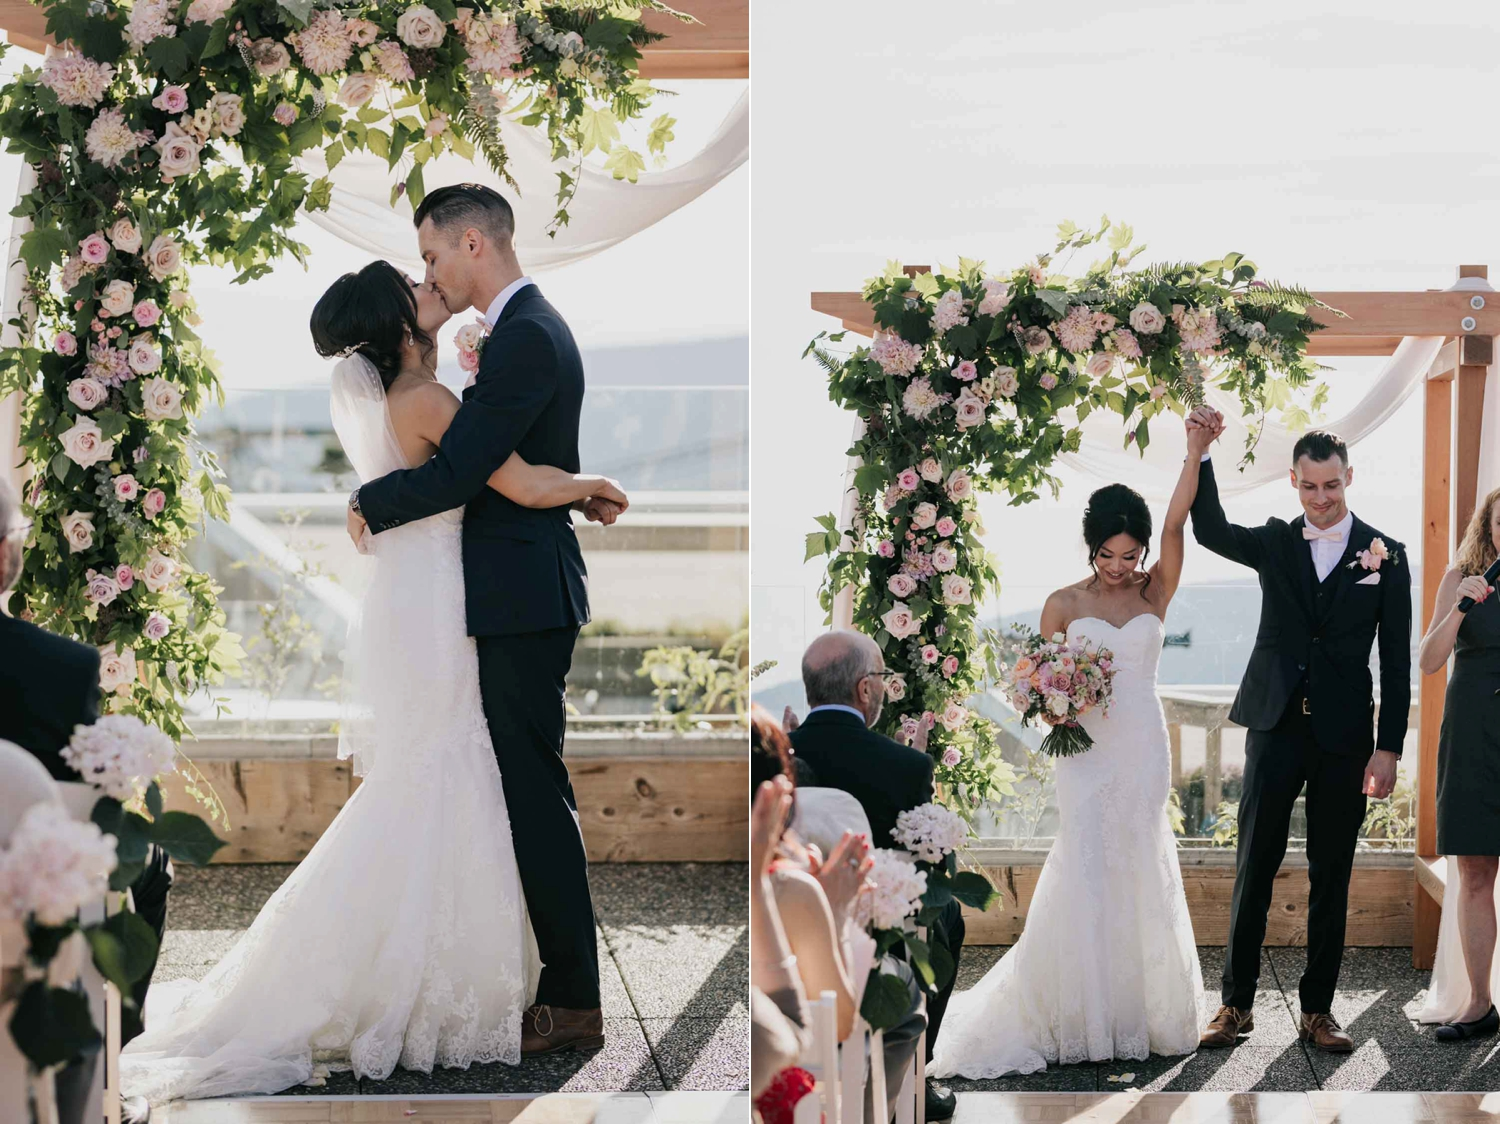 First Kiss Pink White Wooden Flower Arch Ceremony Location Altitudes Bistro Vancouver Wedding Venue